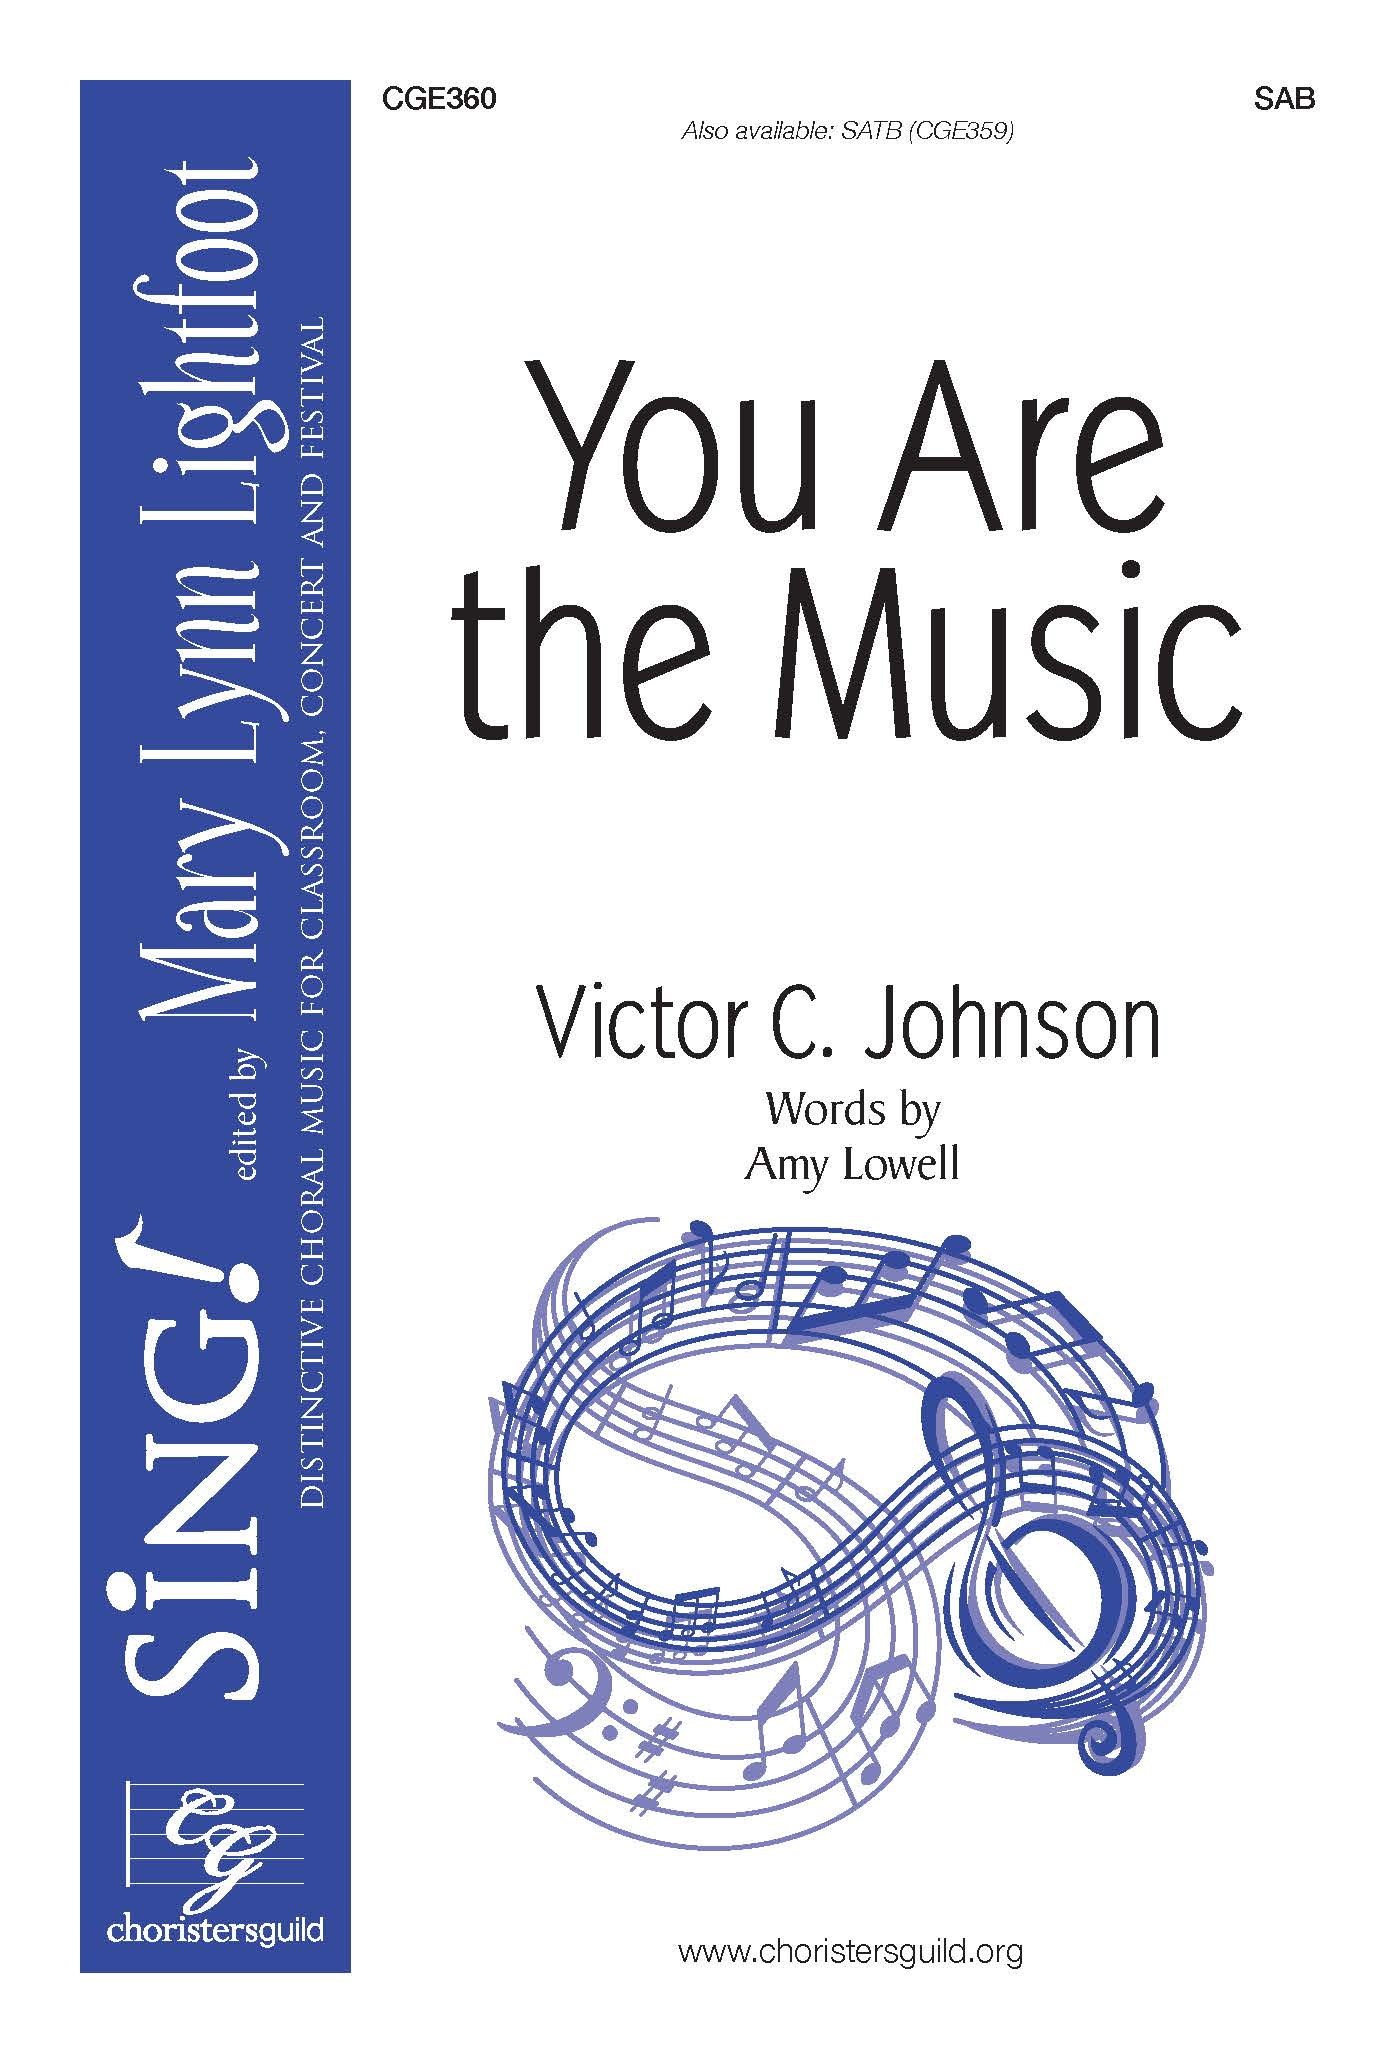 You Are the Music - SAB